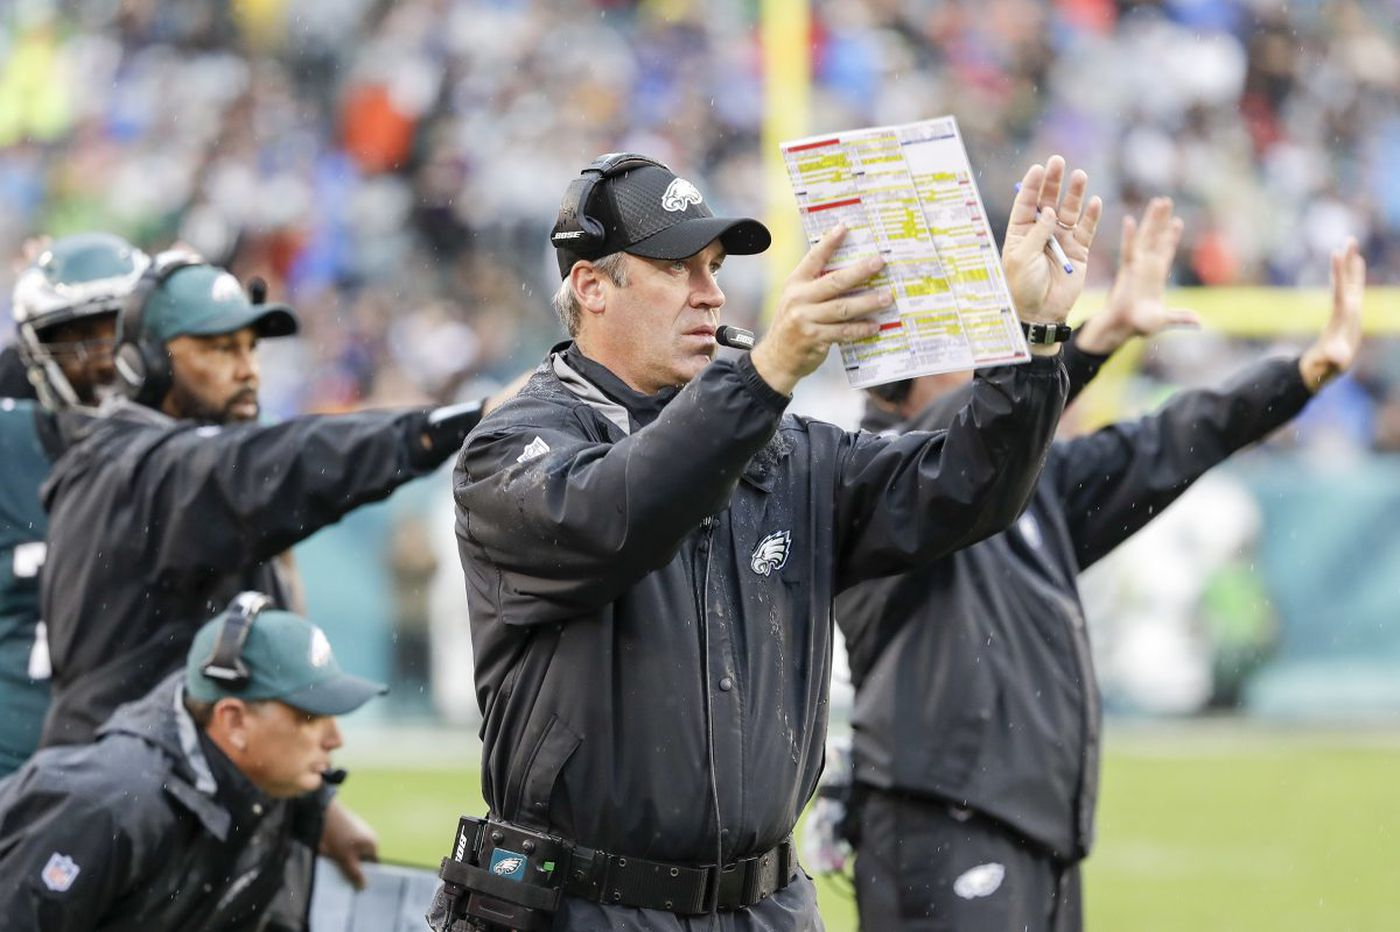 Eagles' coach Doug Pederson's 'Mic'd up' moment against 49ers shows he can crack the whip